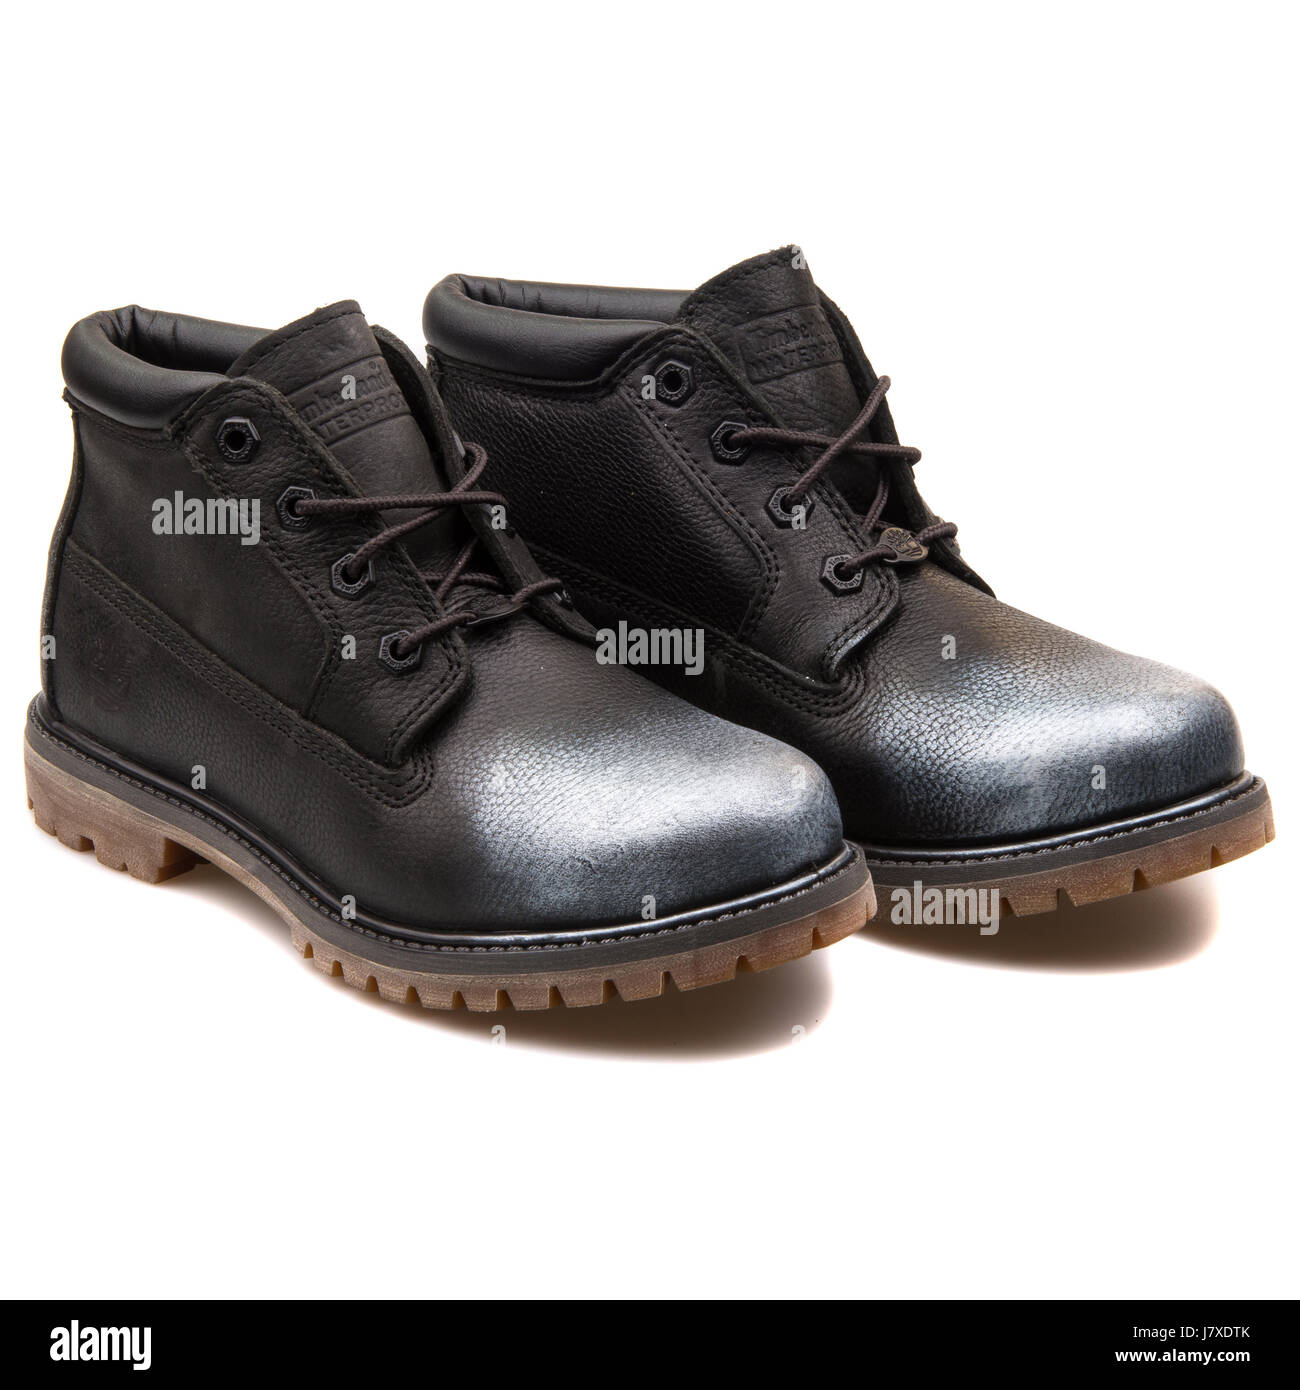 Disfraces laberinto ajo  Timberland Nellie Chukka Double Sole Waterproof Black Women's Leather Stock  Photo - Alamy